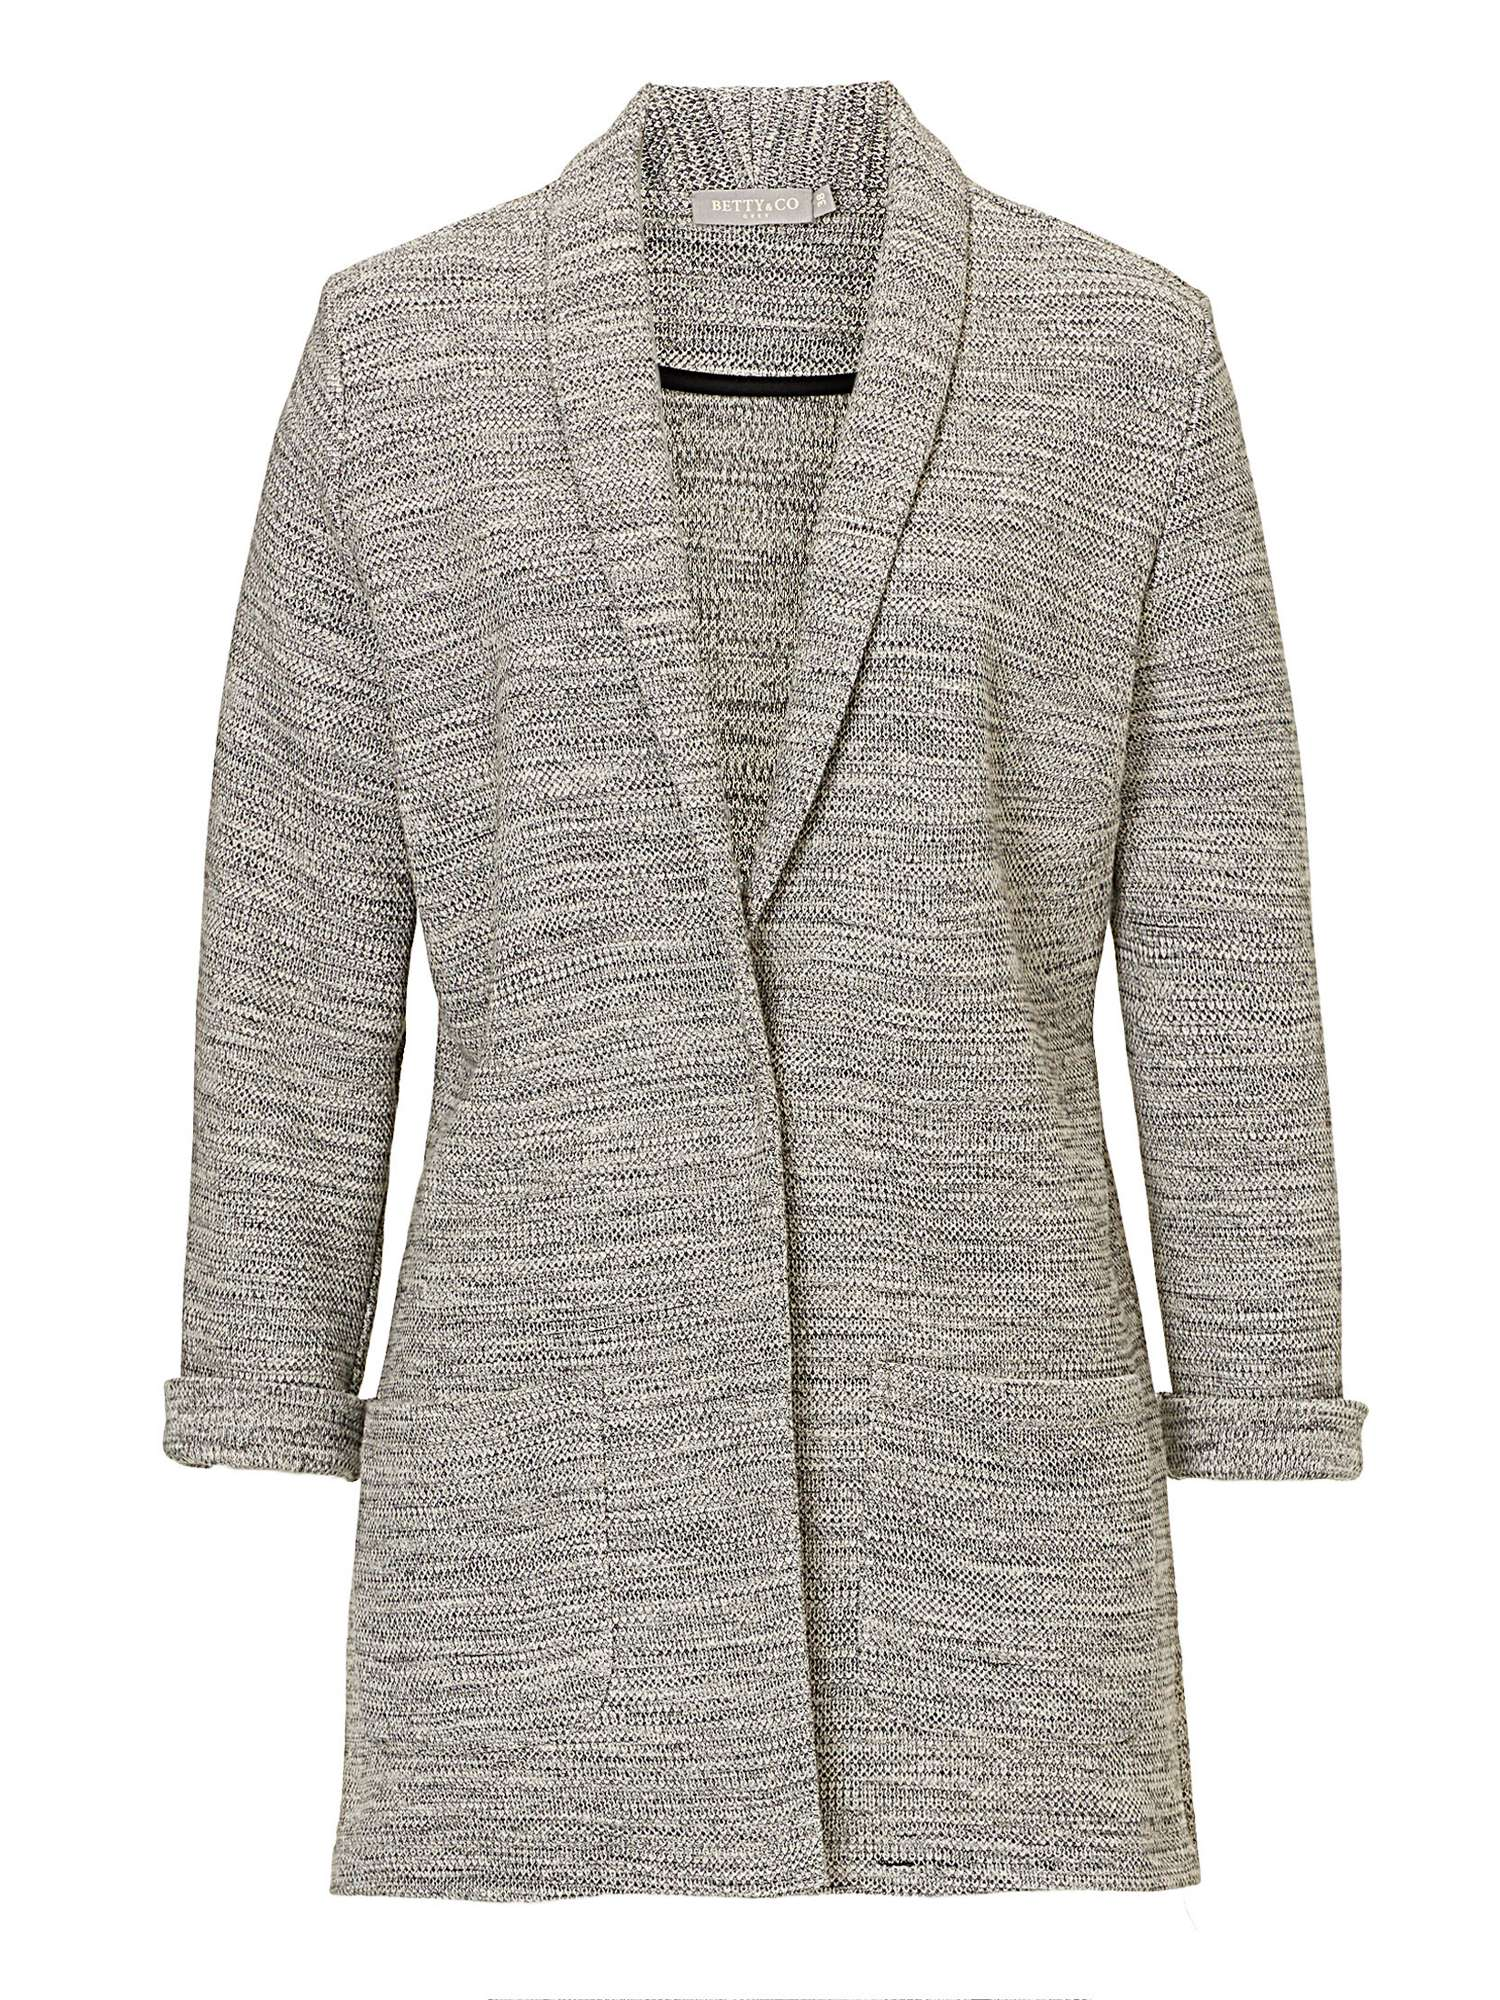 Cardigan Co Jacket amp; Knitted Betty t74AwFqa